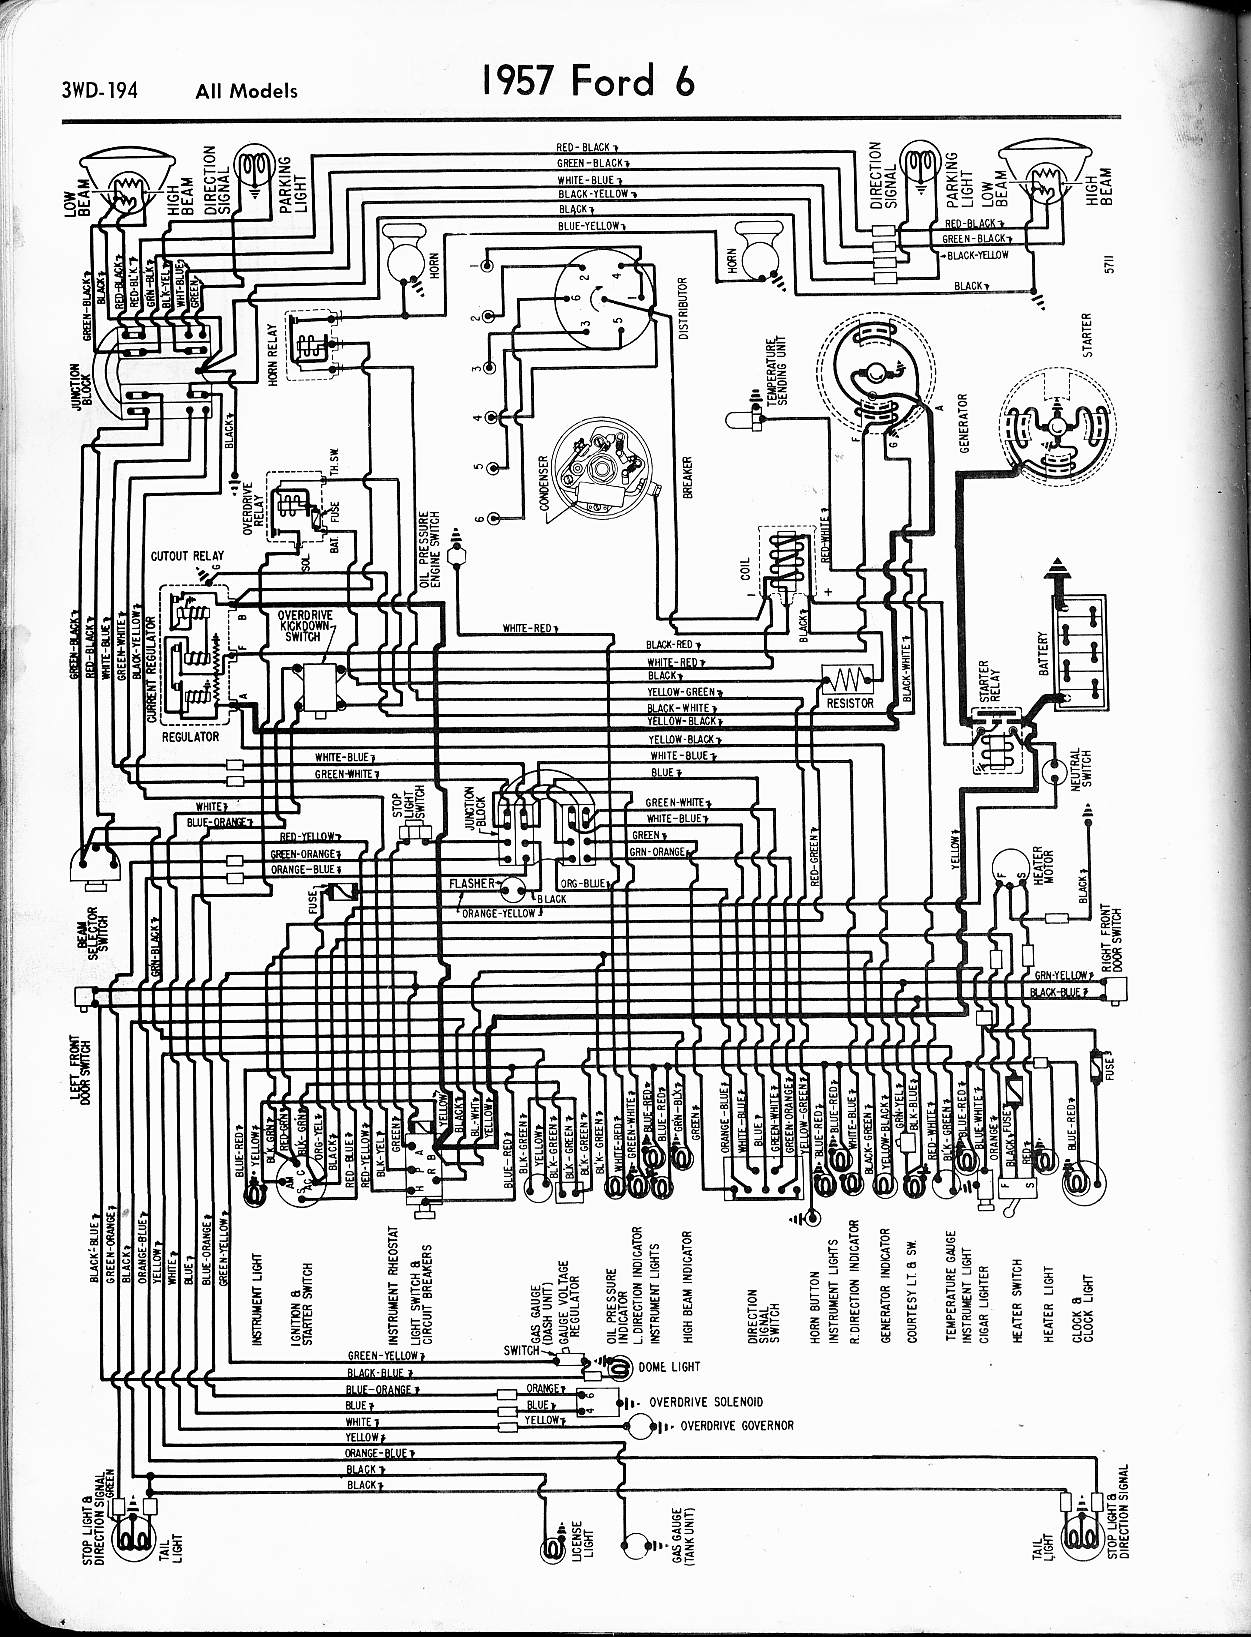 1957 ford truck wiring diagram wiring diagram all data 1950 Ford Truck Wiring Diagram 57 65 ford wiring diagrams 1964 ford truck wiring diagram 1957 ford truck wiring diagram